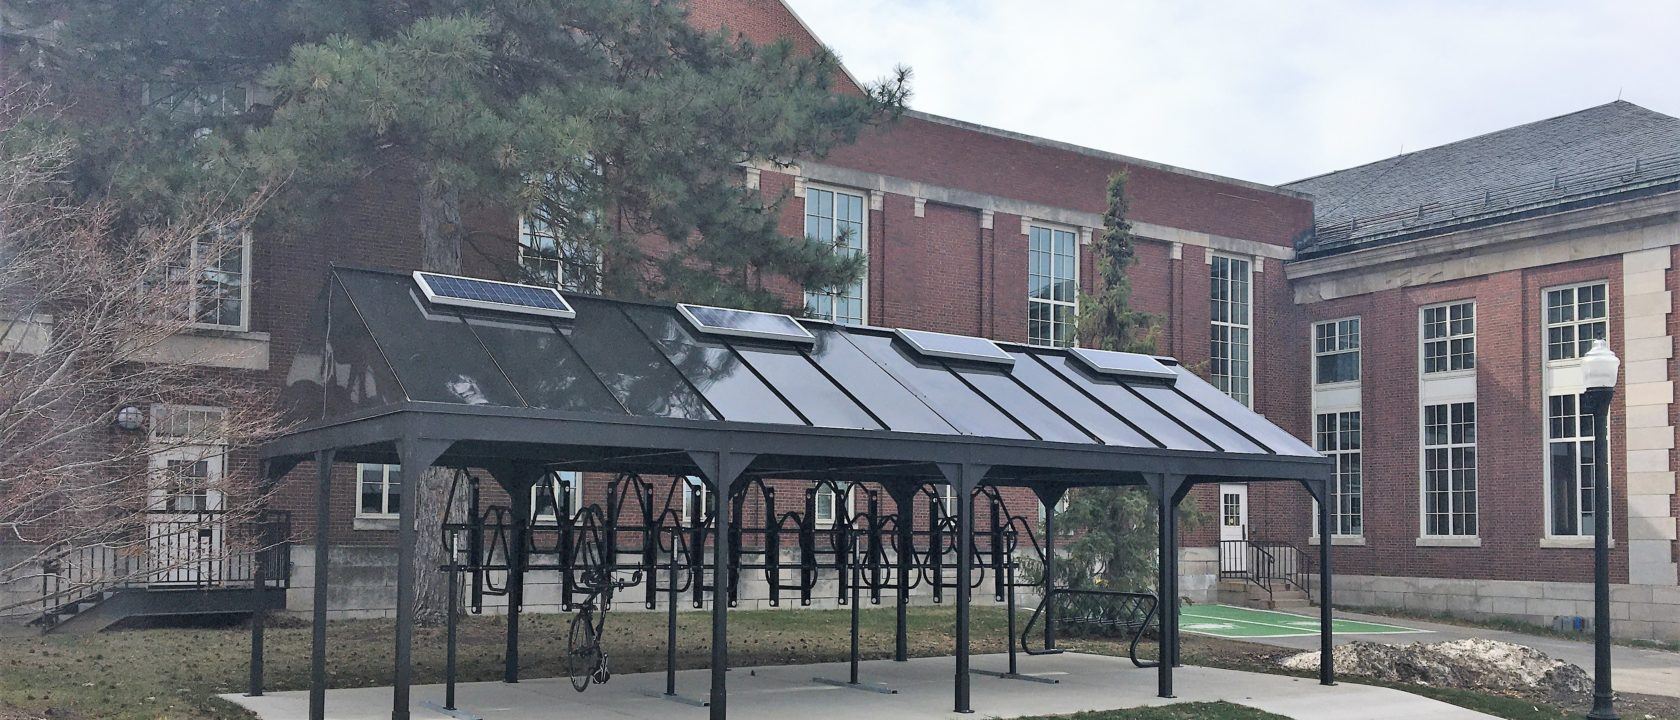 New Bike Rack Installation with Solar-Powered Lighting